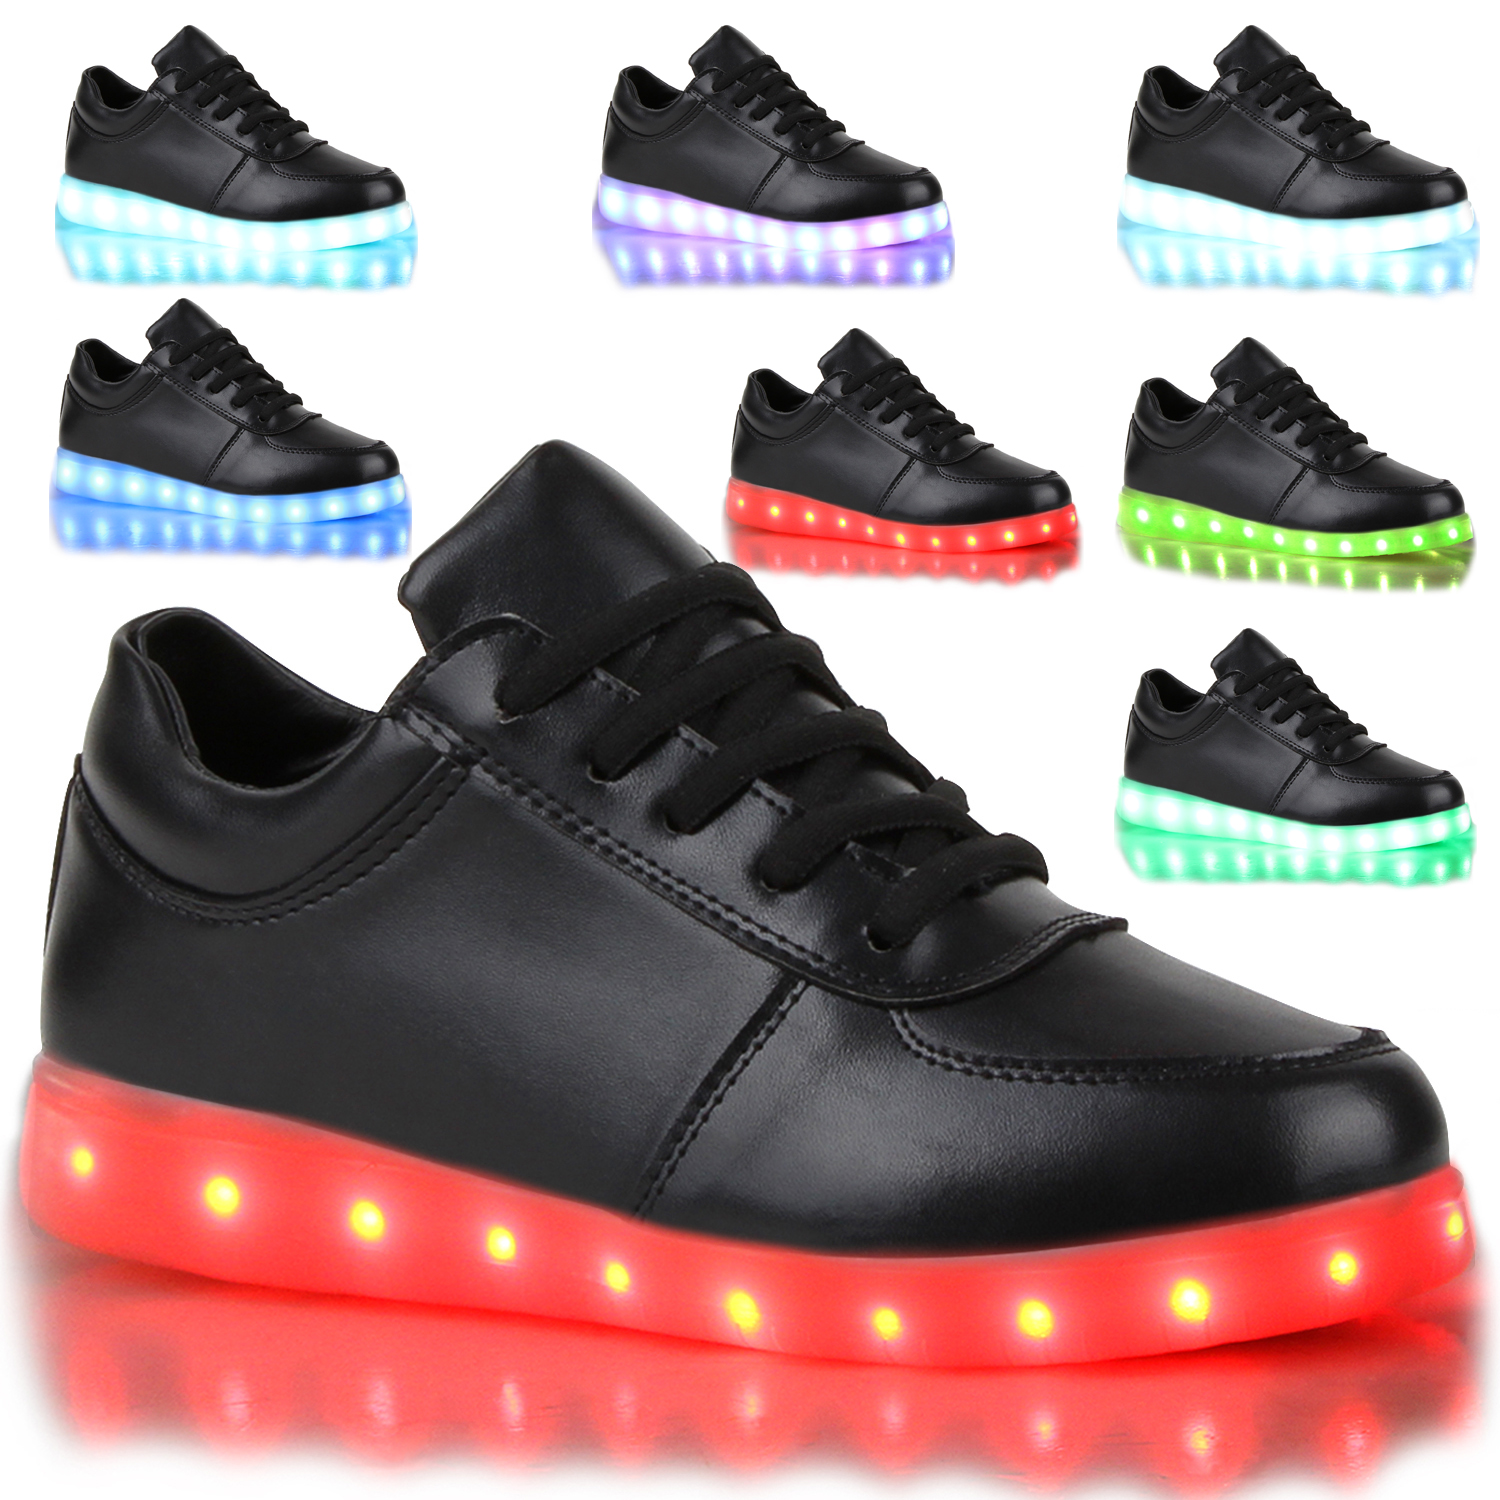 blinkende damen sneakers led light farbwechsel schuhe led licht 78811 trendy ebay